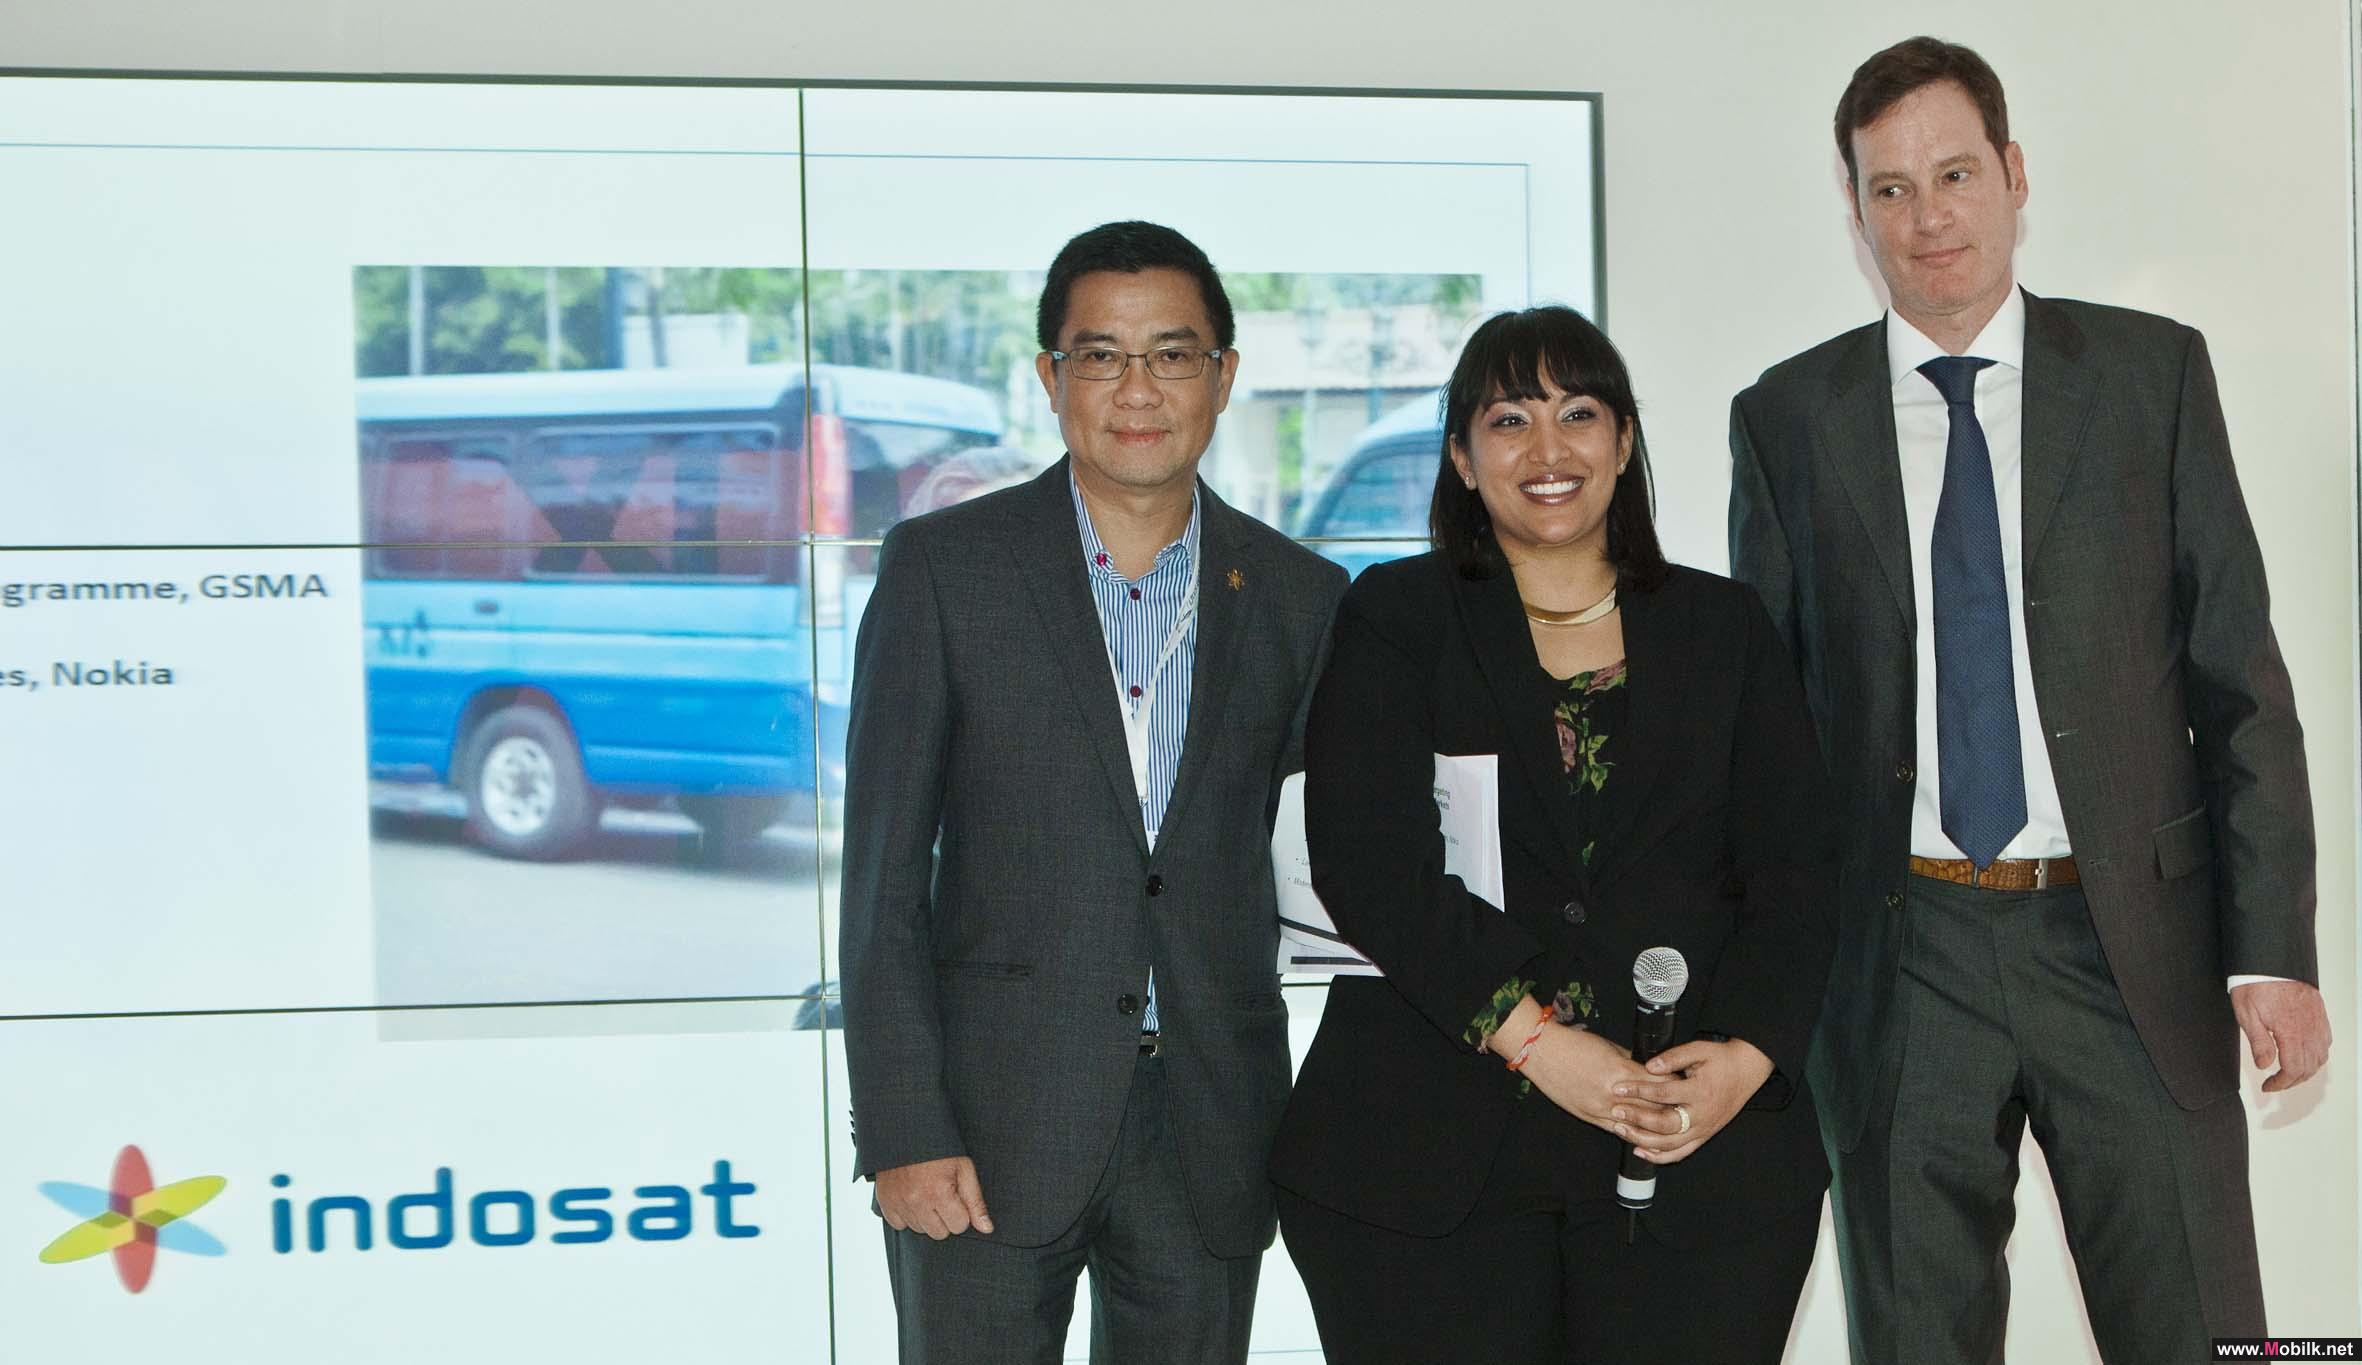 Indosat announces collaboration with Nokia as part of the GSMA mWomen Programme